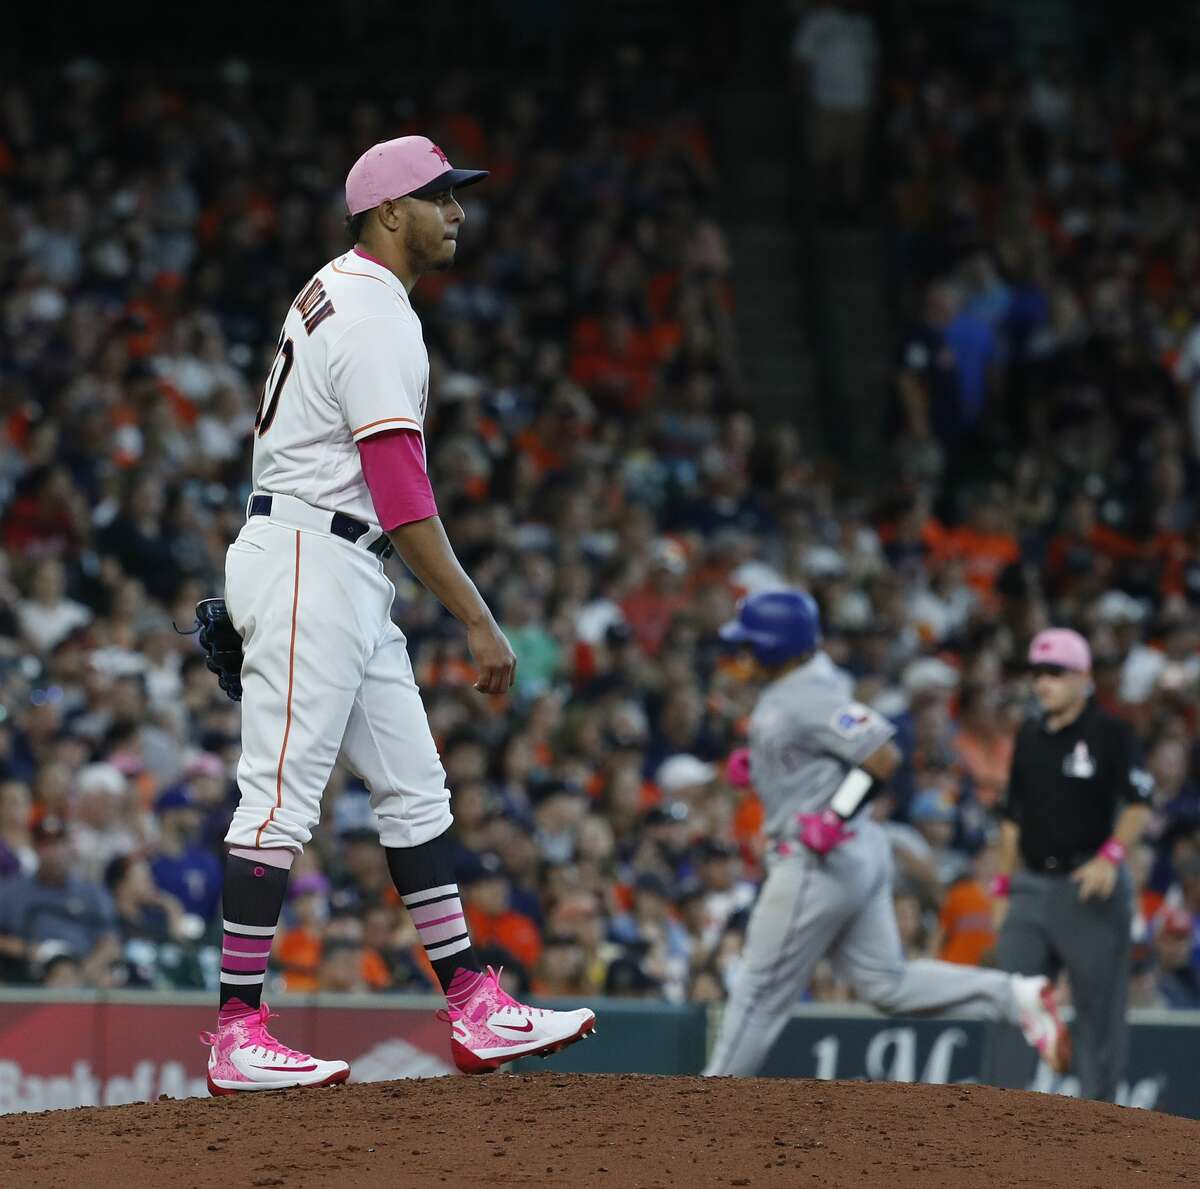 Houston Astros relief pitcher Hector Rondon (30) reacts after giving up a home run to Texas Rangers Carlos Perez during the eighth inning of an MLB game at Minute Maid Park, Sunday, May 13, 2018, in Houston. ( Karen Warren / Houston Chronicle )